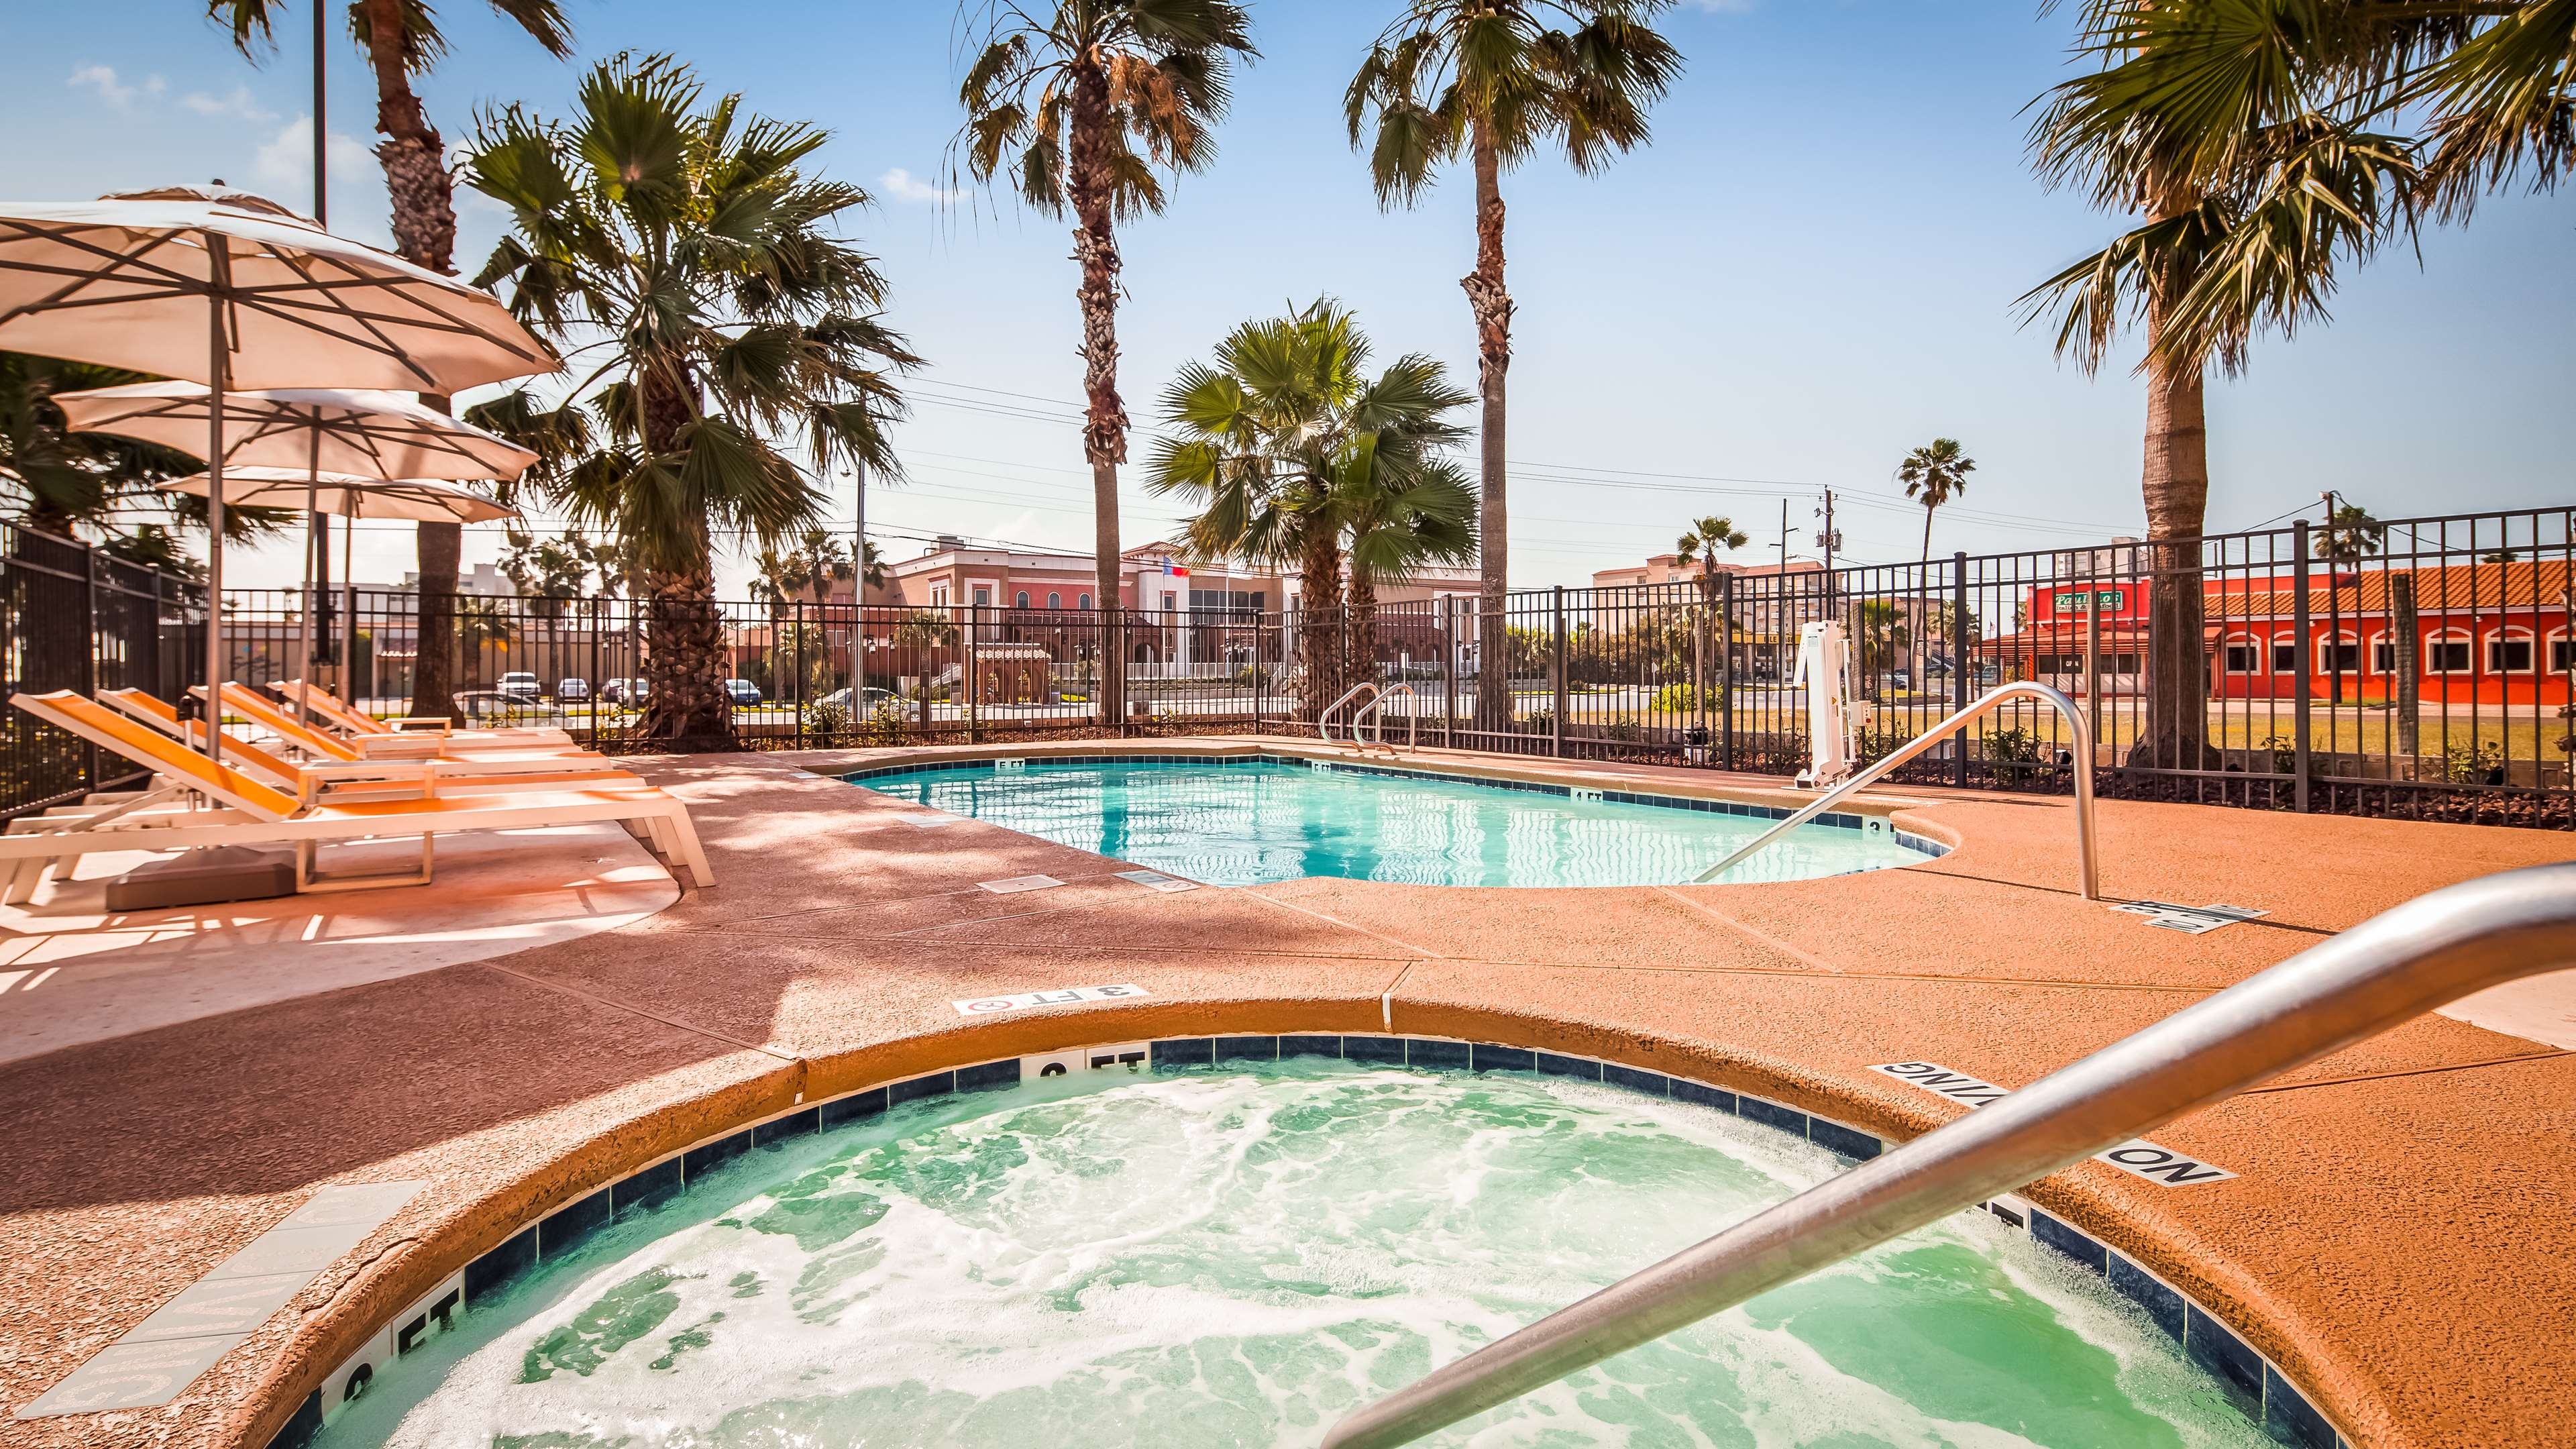 Gay Bed And Breakfast South Padre Island